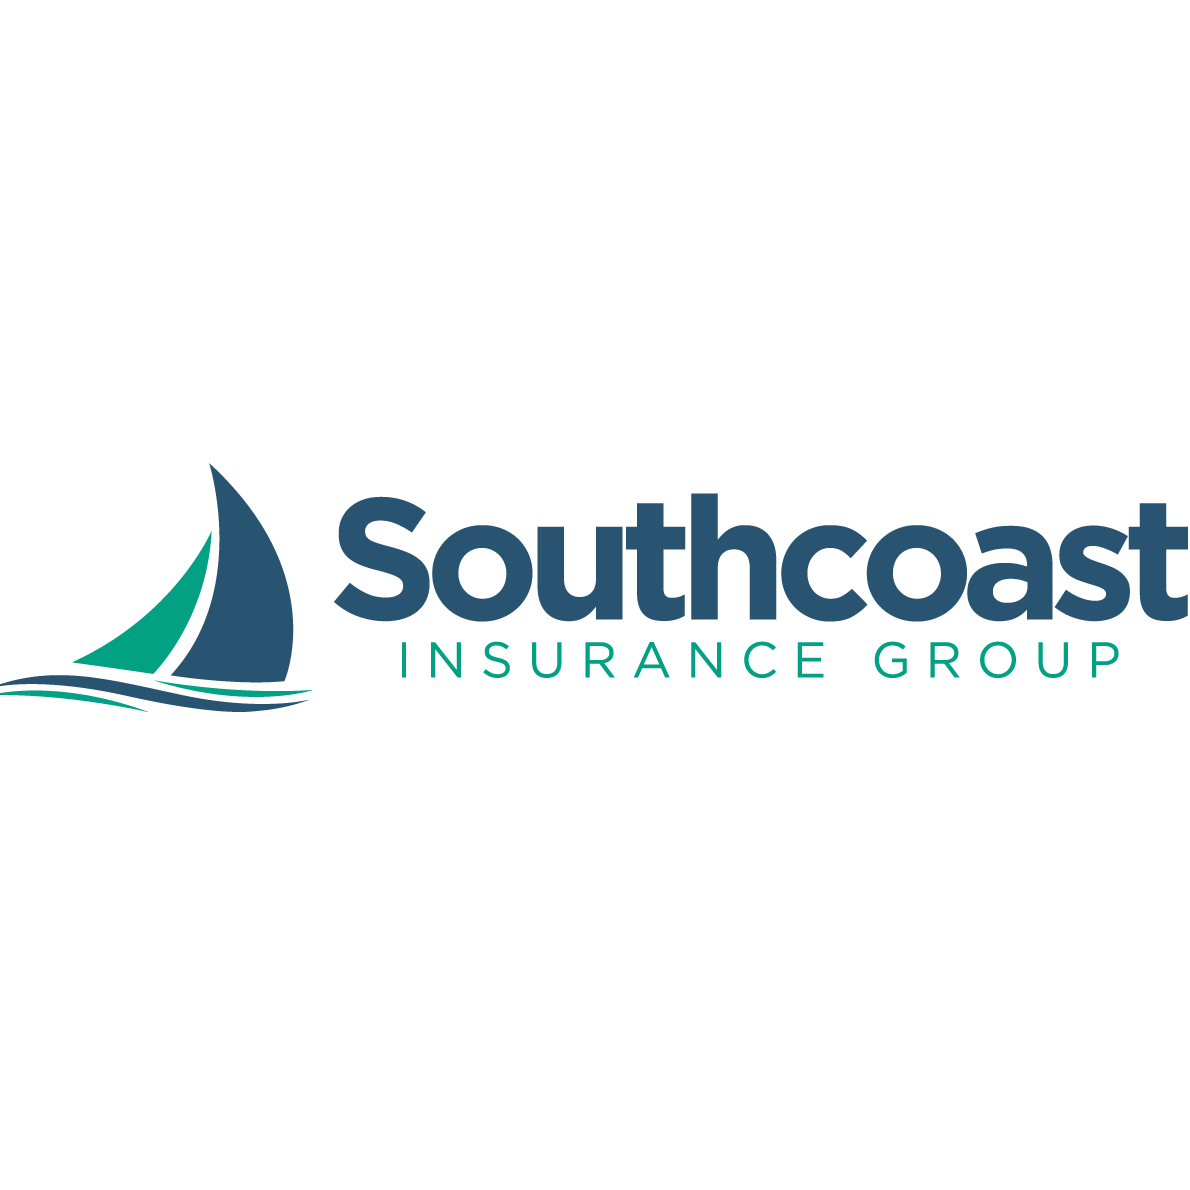 Southcoast Insurance Group